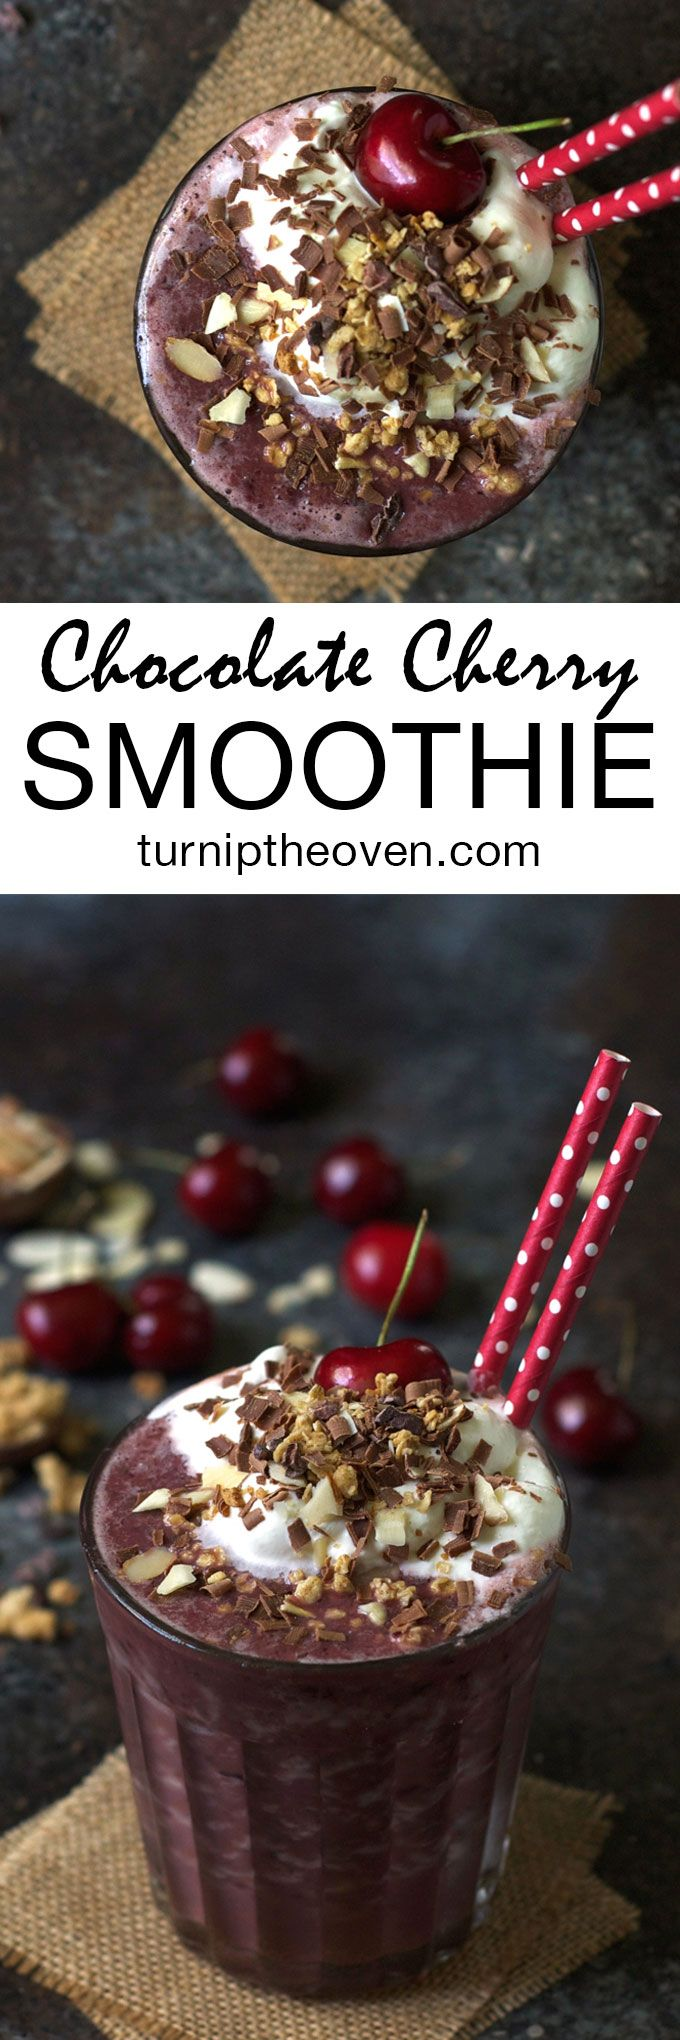 Best 25+ Chocolate smoothies ideas on Pinterest | Chocolate ...